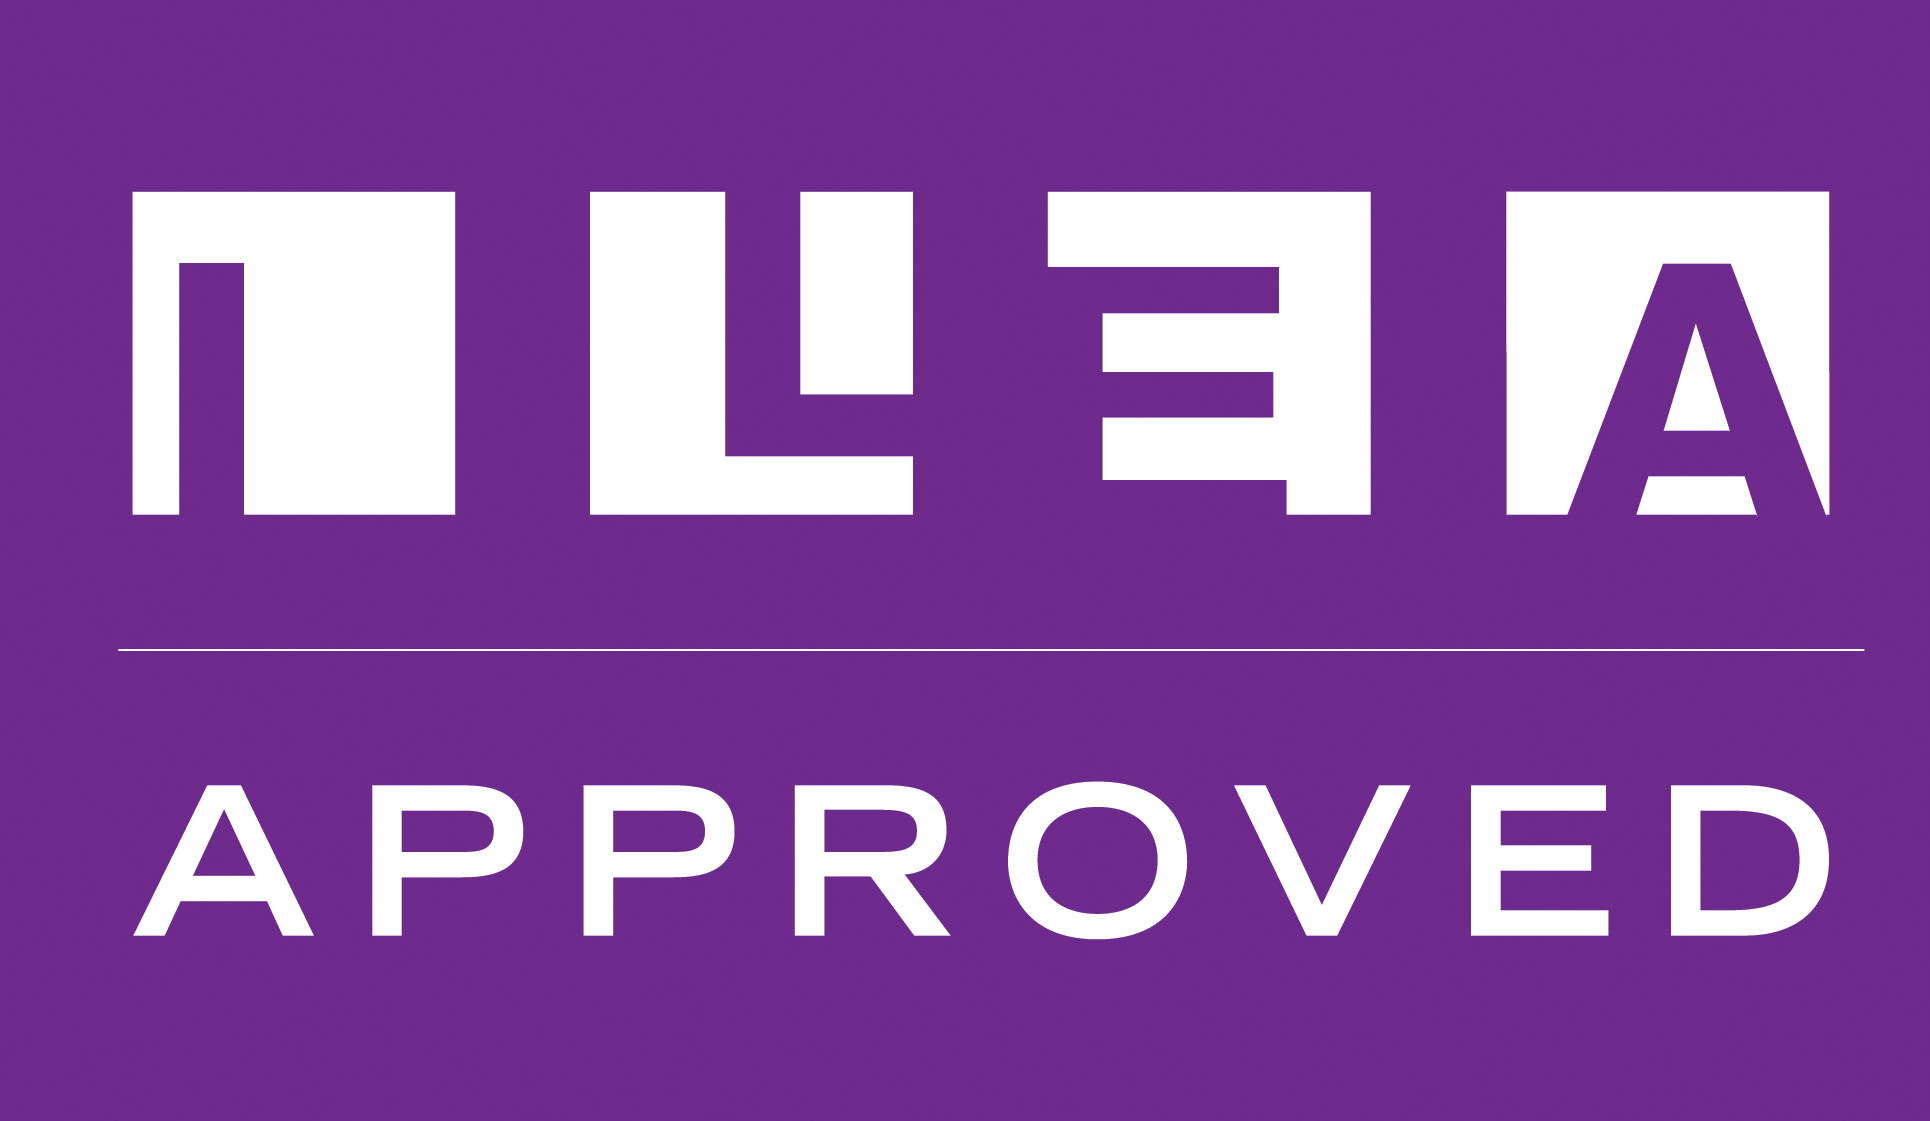 ILEA_ApprovedLogo_2603C_1.png